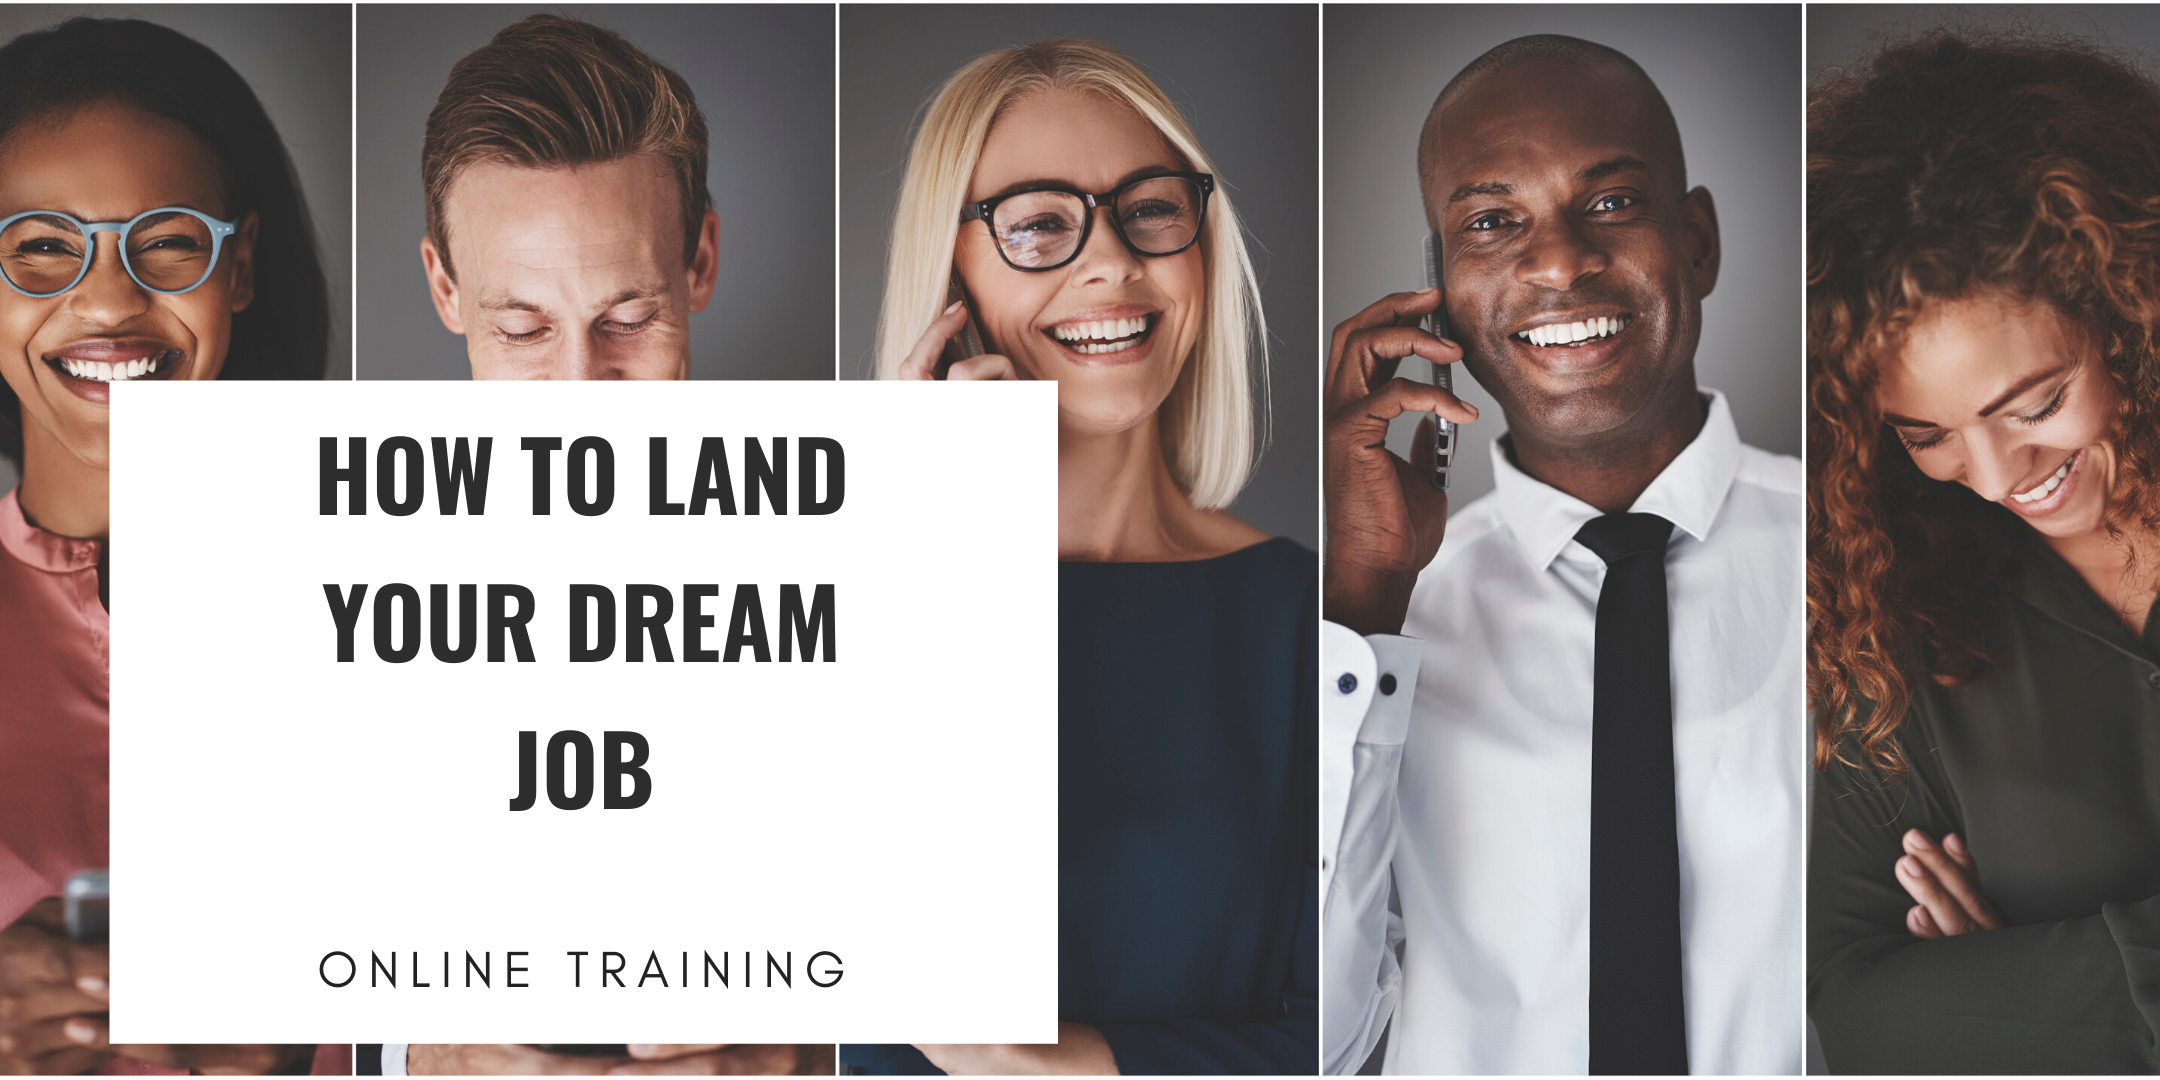 FREE TRAINING: HOW TO LAND YOUR DREAM JOB (CAREER WORKSHOP) Dallas, TX